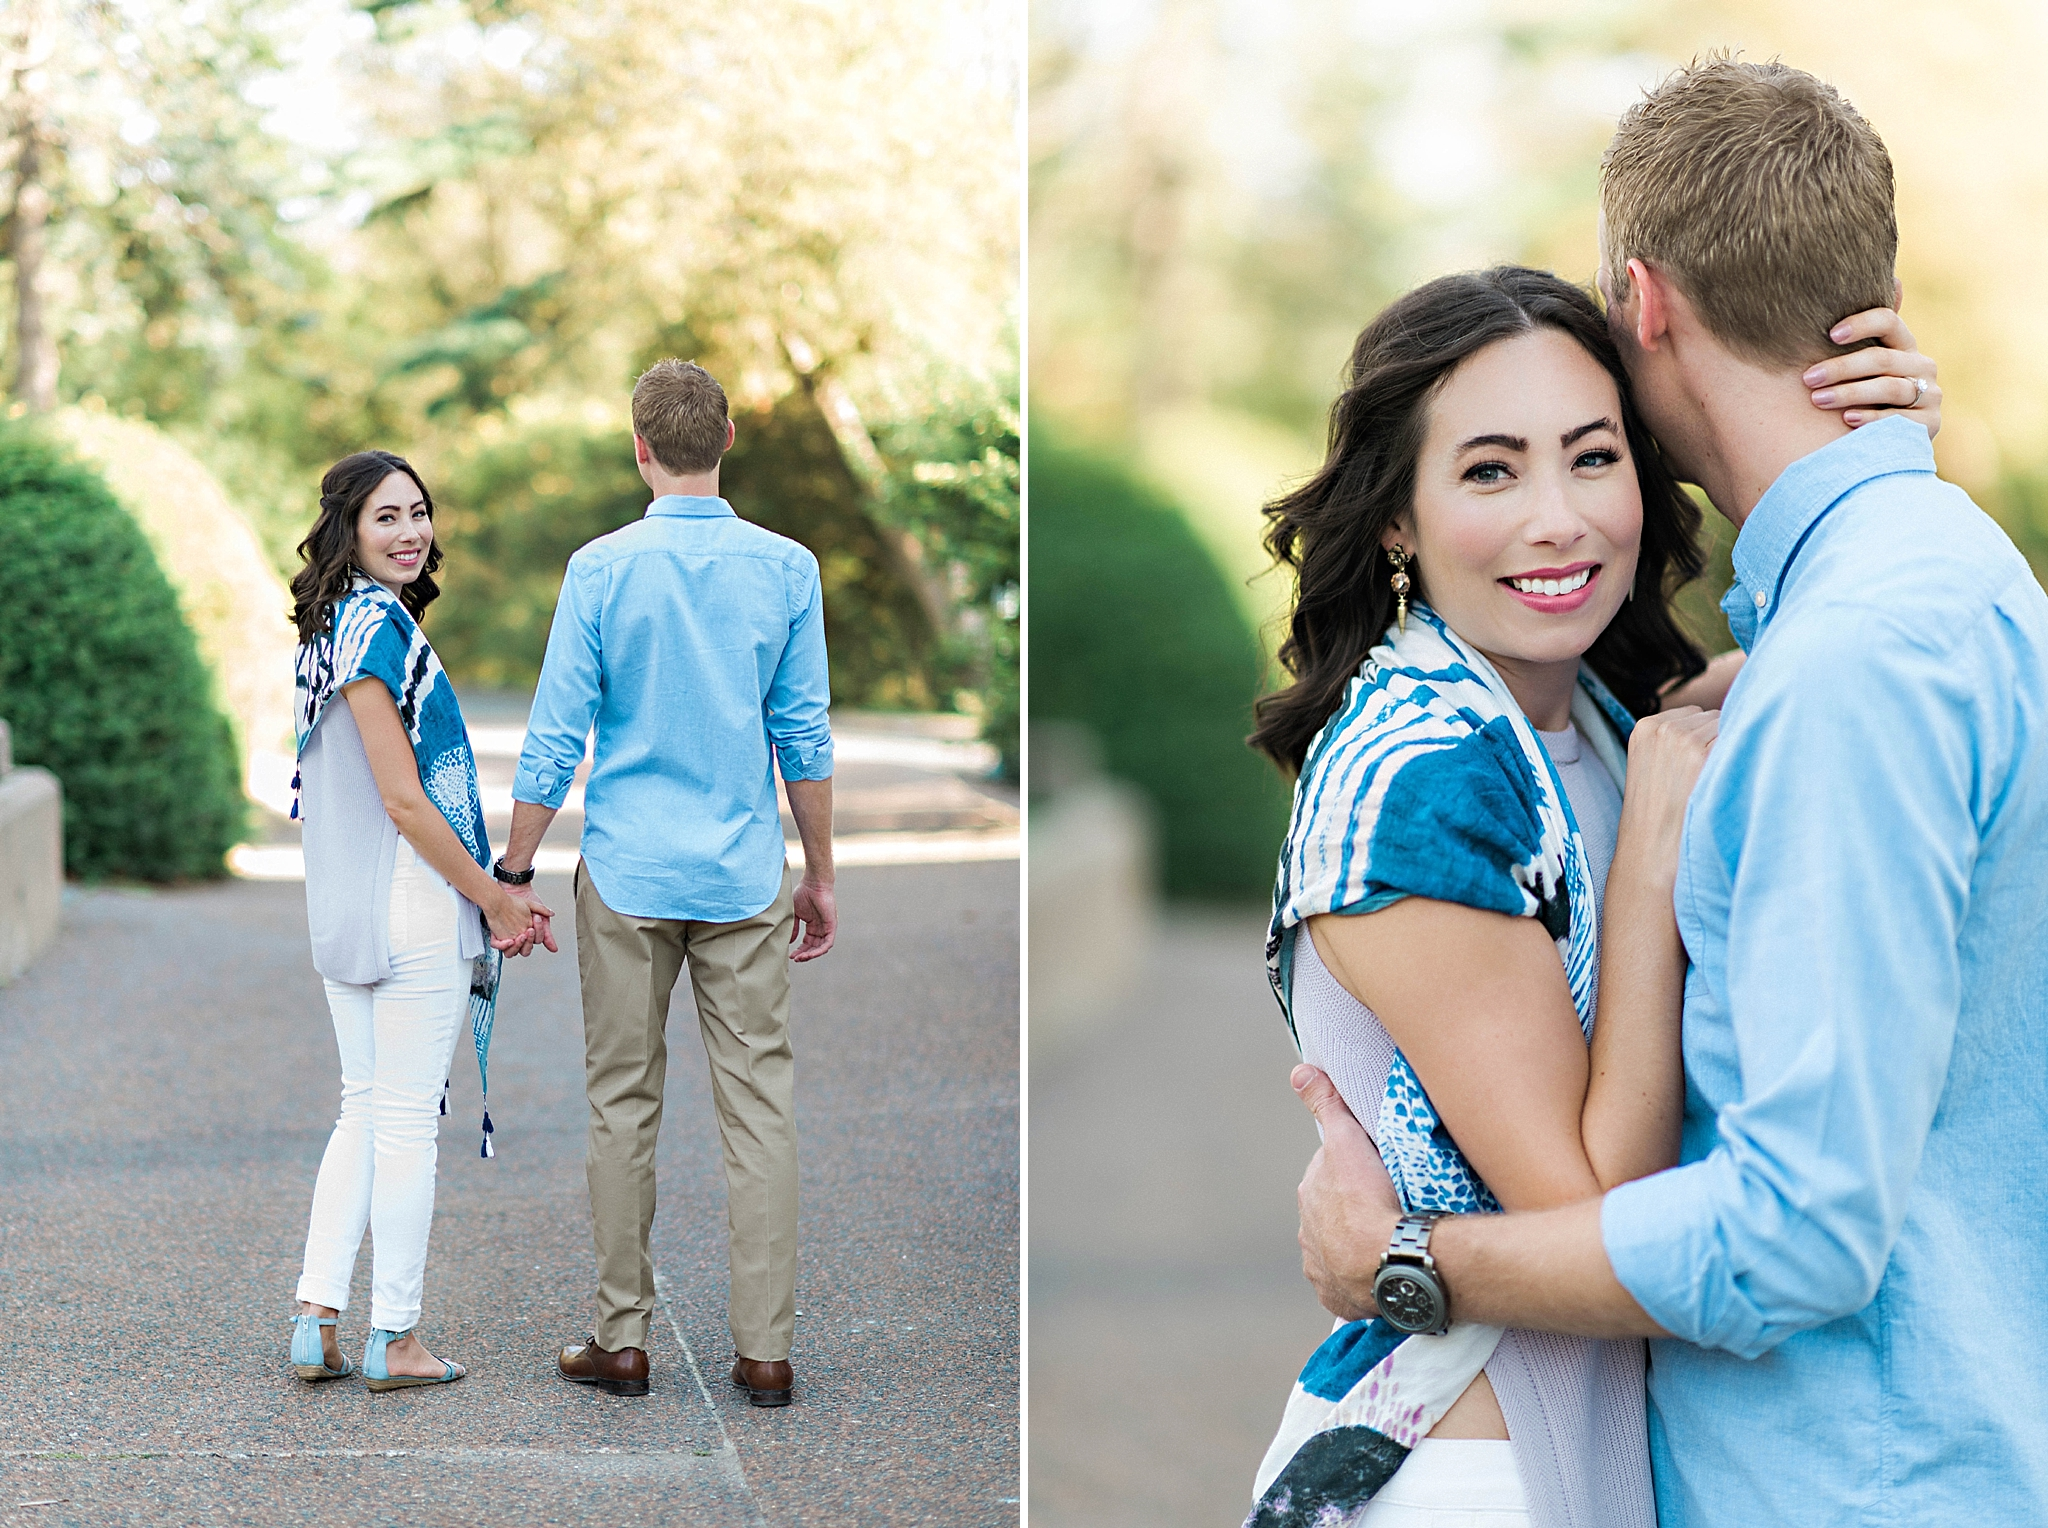 Romantic Seaside Beach Engagement Shoot in Lulu's long flowy maxy dress_005.jpg